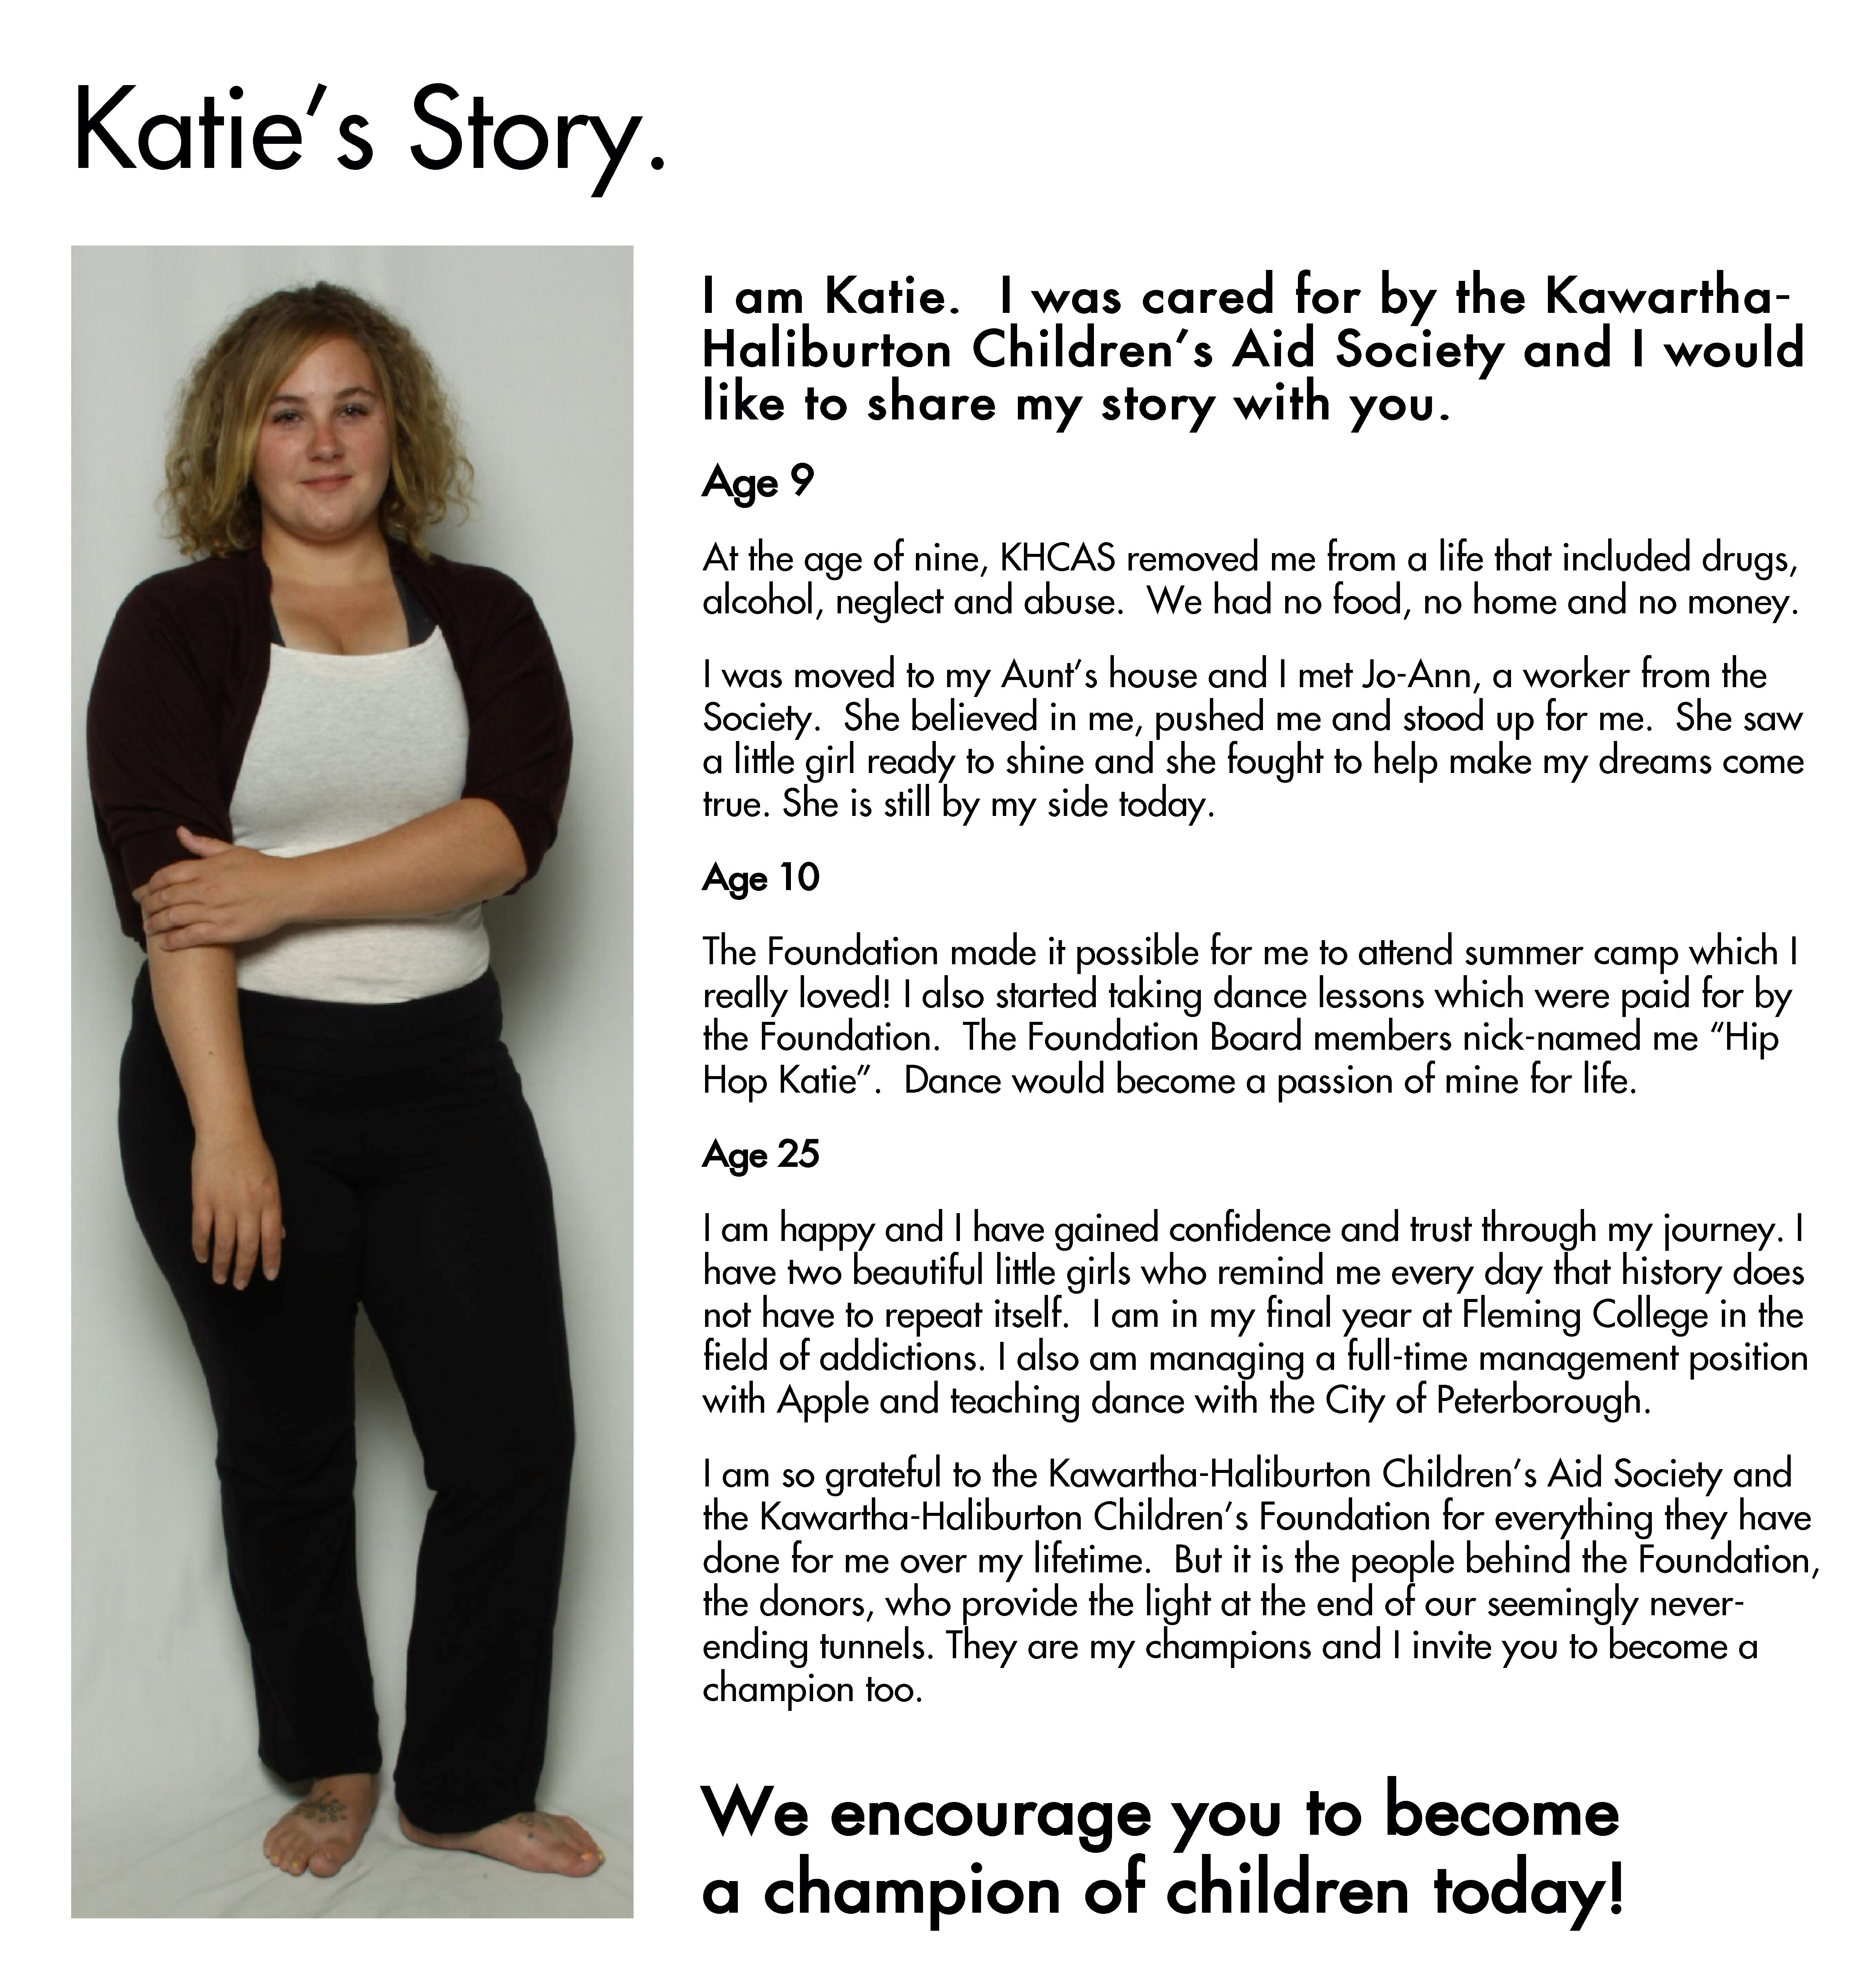 """A photo of Katie next to her testimonials. The text beside her says: I am Katie. I was cared for by the Kawartha-Haliburton Children's Aid Society and I would like to share my story with you. Age 9: At the age of nine, KHCAS removed me from a life that included drugs, alcohol, neglect and abuse. We had no food, no home and no money. I was moved to my Aunt's house and I met Jo-Ann, a worker from the Society. She believed in me, pushed me and stood up for me. She saw a little girl ready to shine and she fought to help make my dreams come true. She is still by my side today. Age 10: The Foundation made it possible for me to attend summer camp which I really loved! I also started taking dance lessons which were paid for by the Foundation. The Foundation Board members nick-named me """"Hip Hop Katie"""". Dance would become a passion of mine for life. Age 25: I am happy and I have gained confidence and trust through my journey. I have two beautiful little girls who remind me every day that history does not have to repeat itself. I am in my final year at Fleming College in the field of addictions. I also am managing a full-time management position with Apple and teaching dance with the City of Peterborough. I am so grateful to the Kawartha-Haliburton Children's Aid Society and the Kawartha-Haliburton Children's Foundation for everything they have done for me over my lifetime. But it is the people behind the Foundation, the donors, who provide the light at the end of our seemingly never-ending tunnels. They are my champions and I invite you to become a champion too. Her testimonial ends here, and the text below it says We encourage you to become a champion of children today!"""